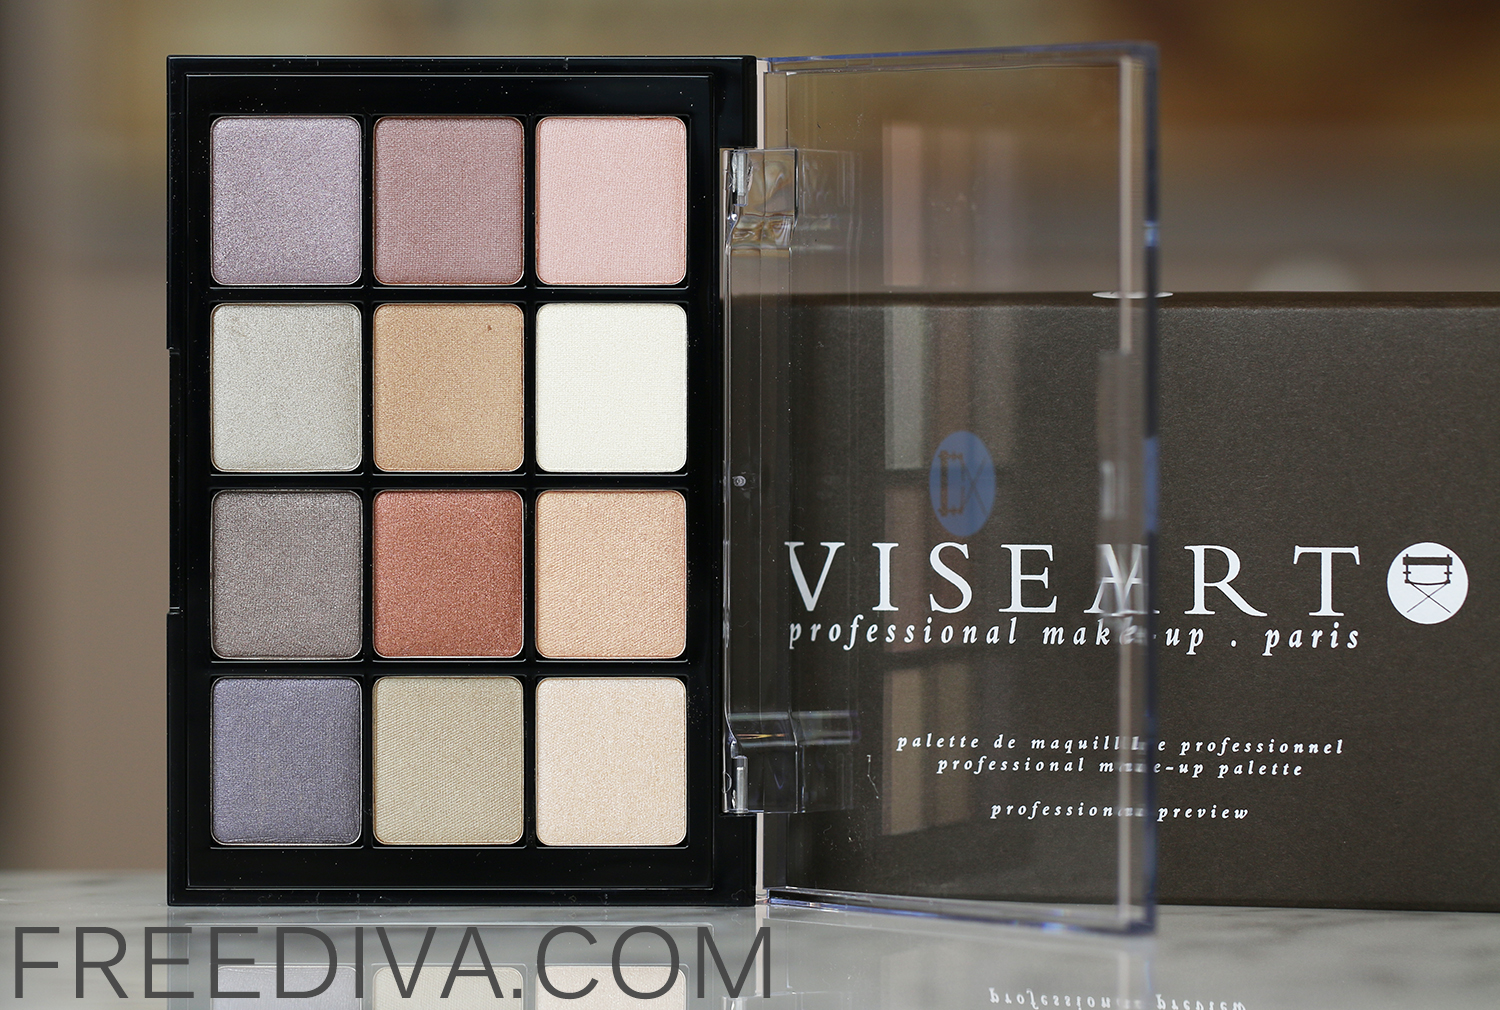 Viseart Eyeshadow Palette 06 Paris Nude